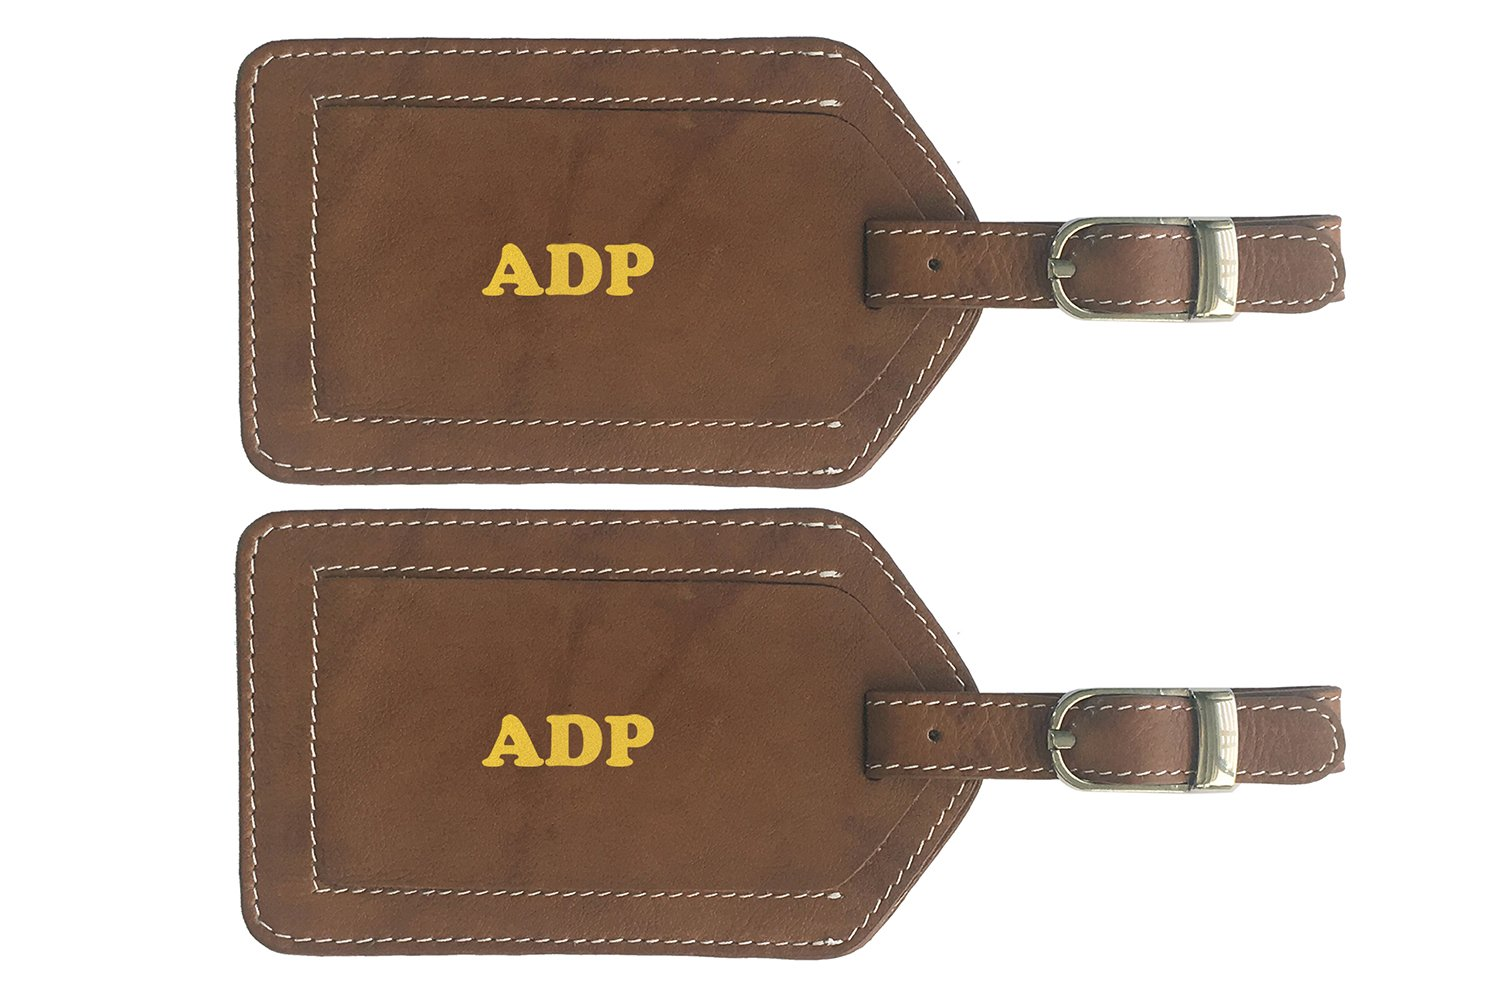 Personalized Monogrammed Antique Saddle Leather Luggage Tags - 2 Pack